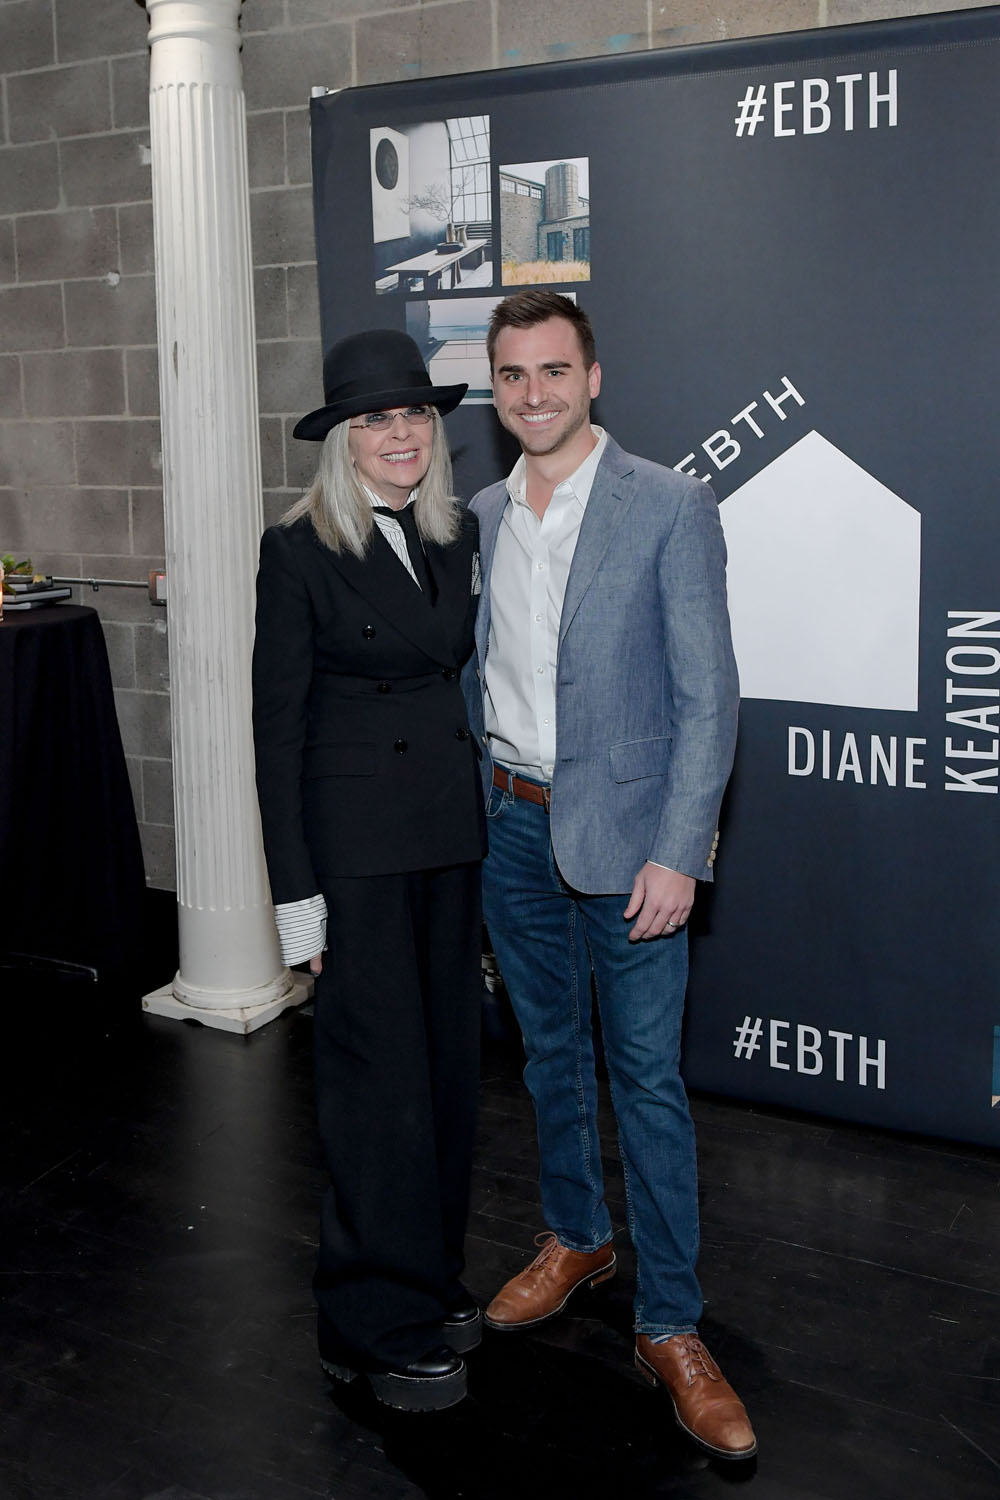 7a4bf22cb7b An Evening with Diane Keaton and EBTH